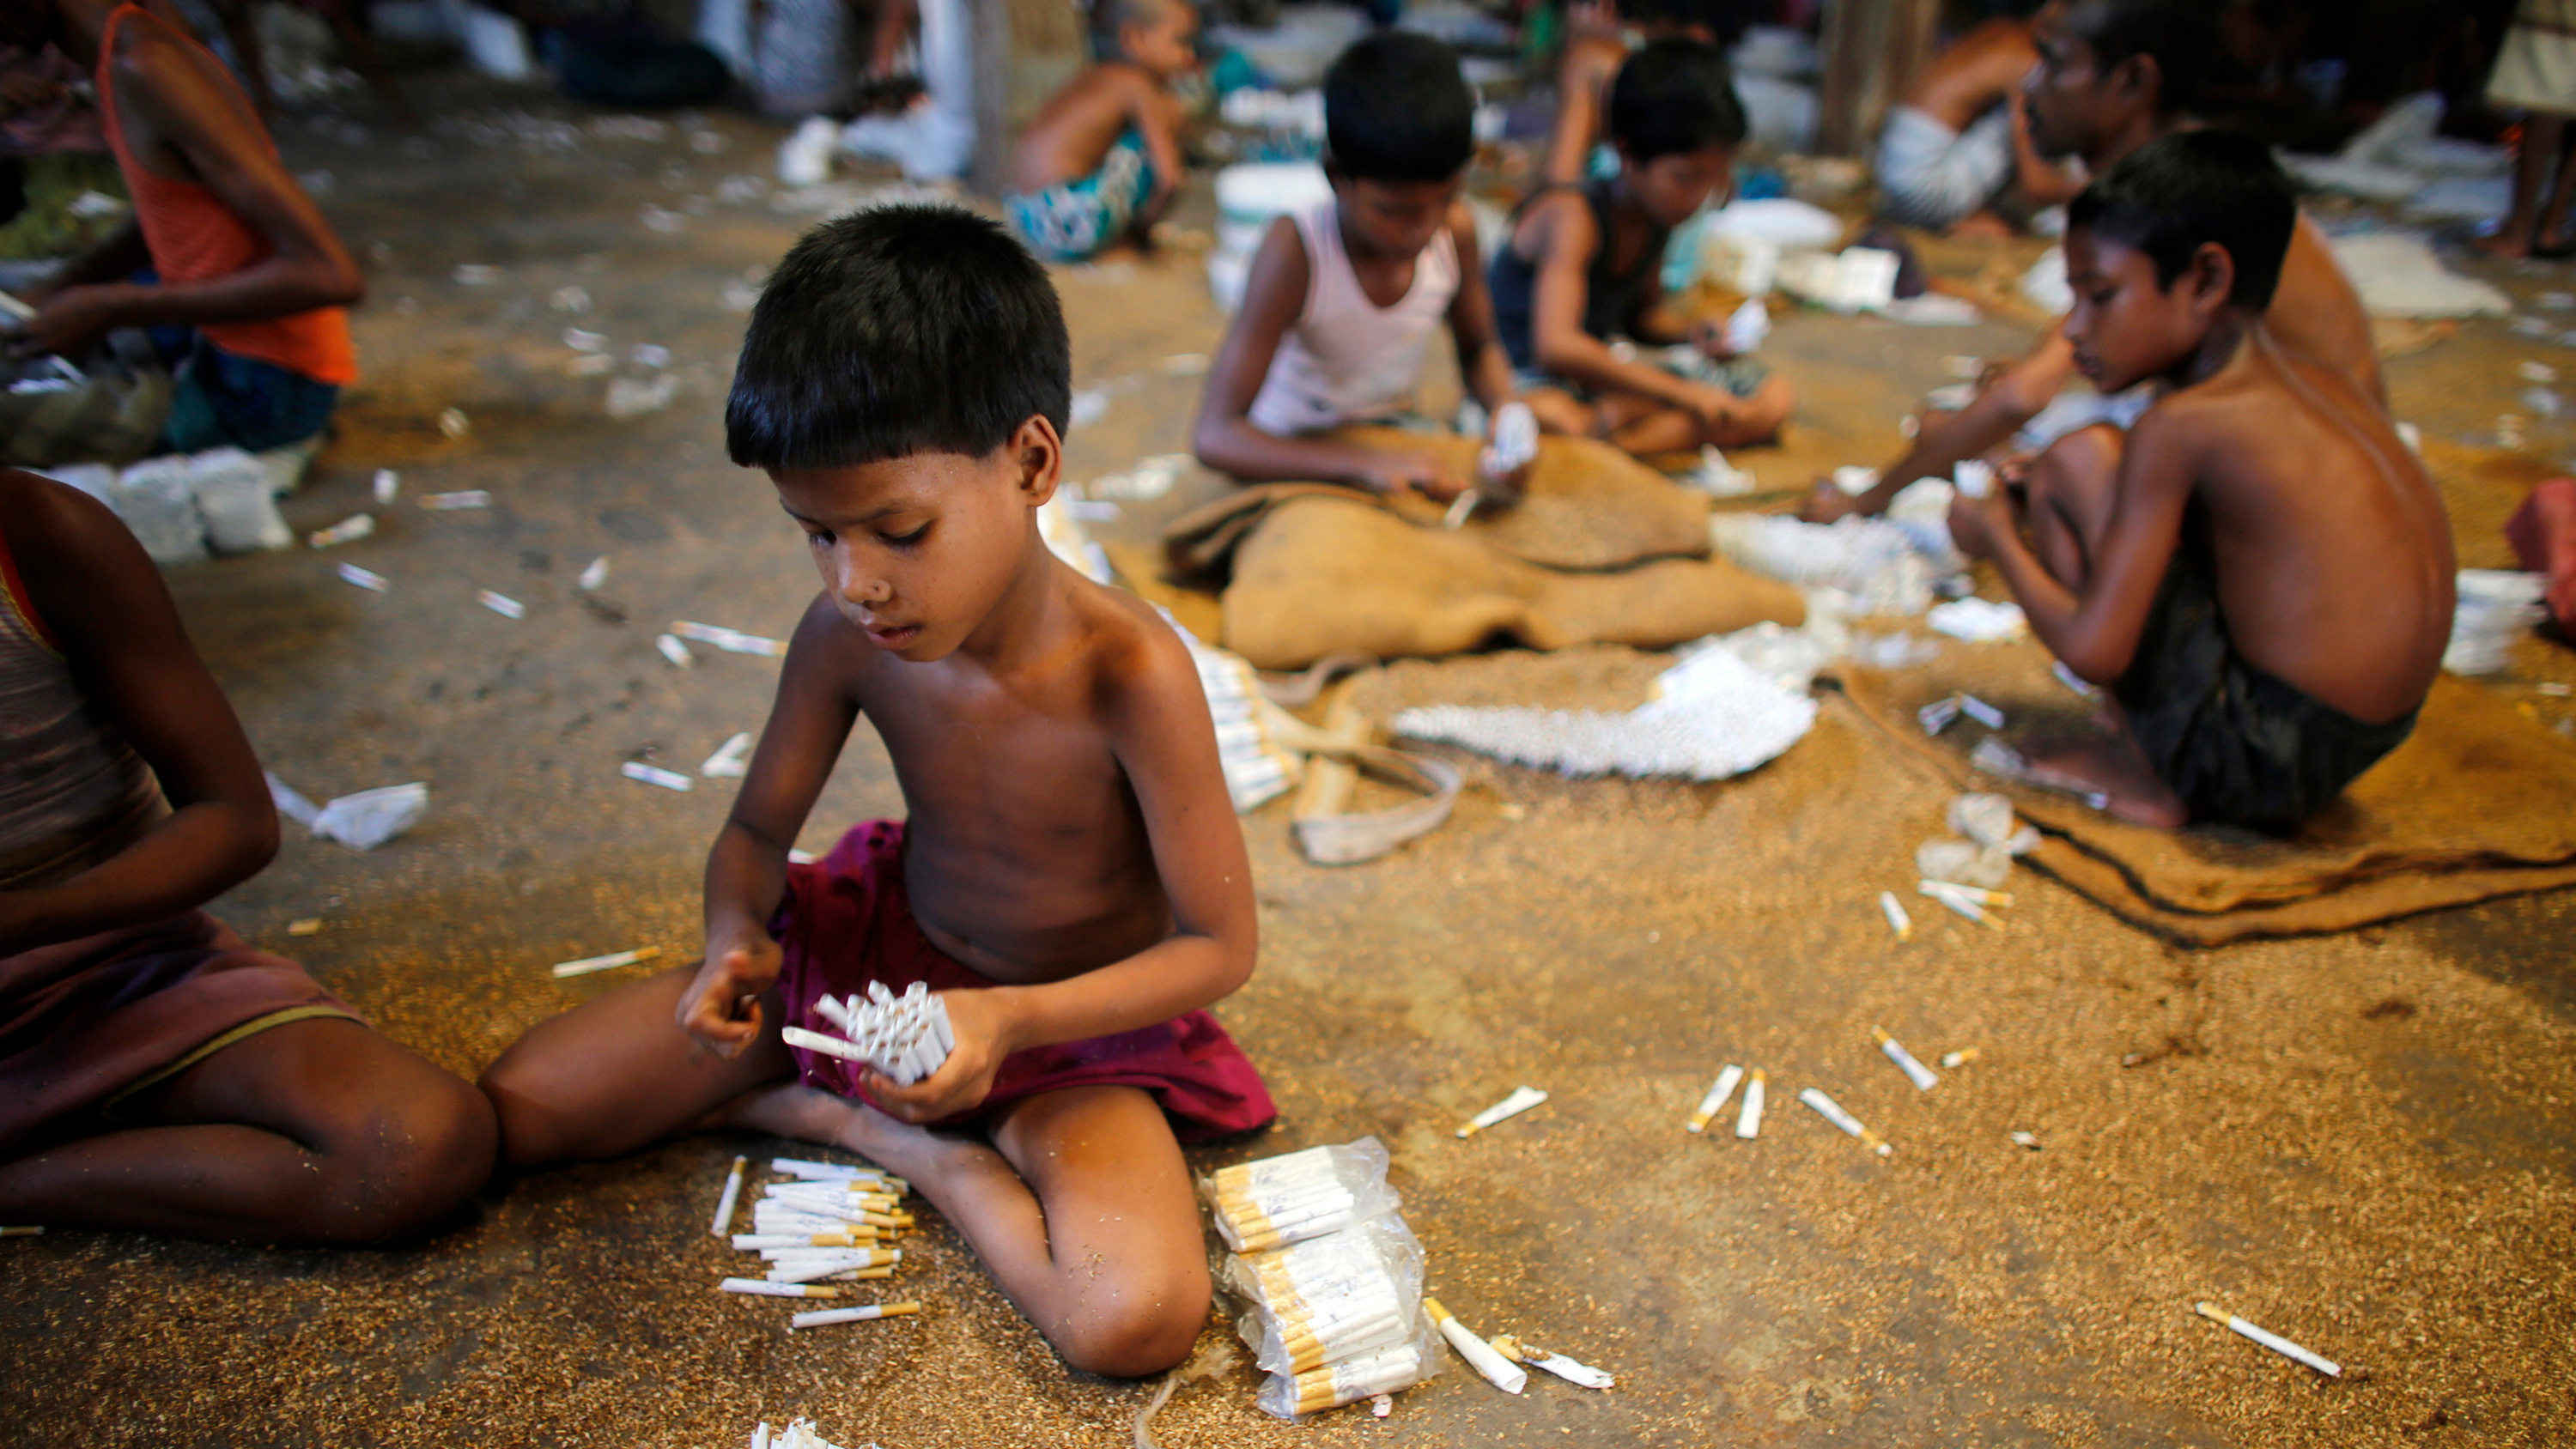 Picture shows several small children sitting around sorting piles of cigarettes.